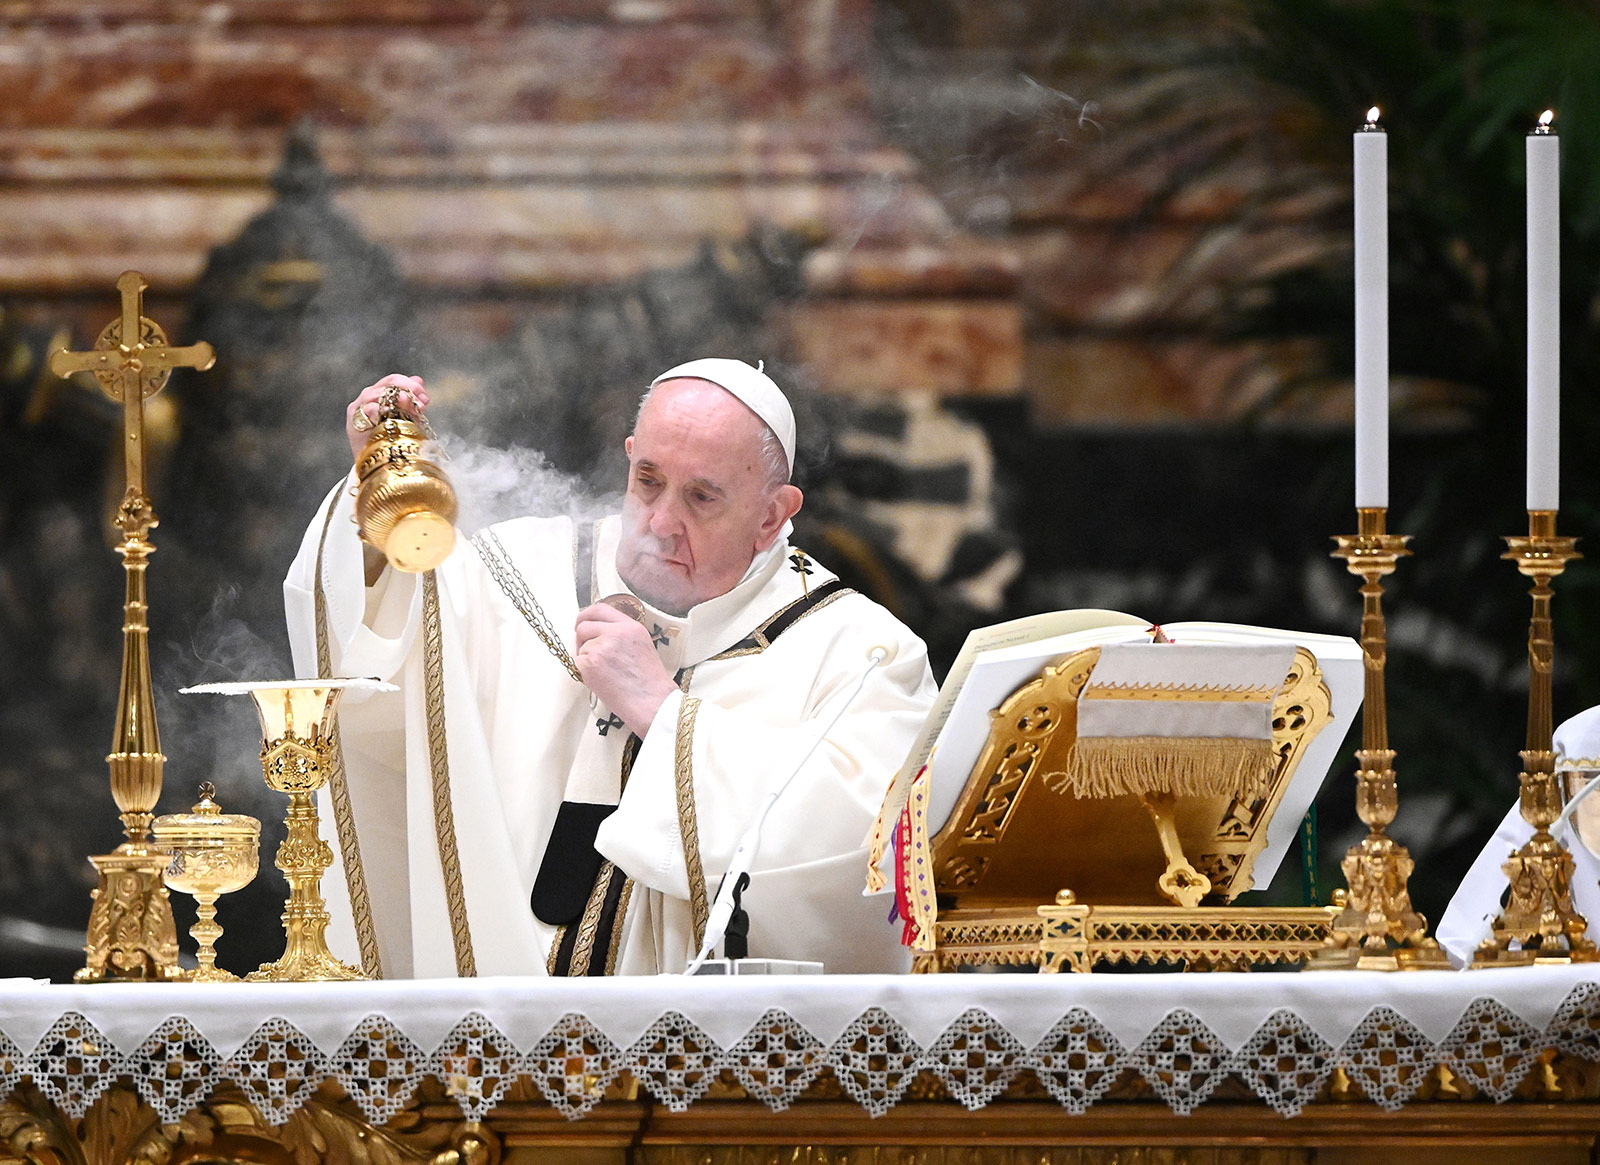 Pope Francis leads a Christmas Eve mass at St. Peter's Basilica in the Vatican on December 24.